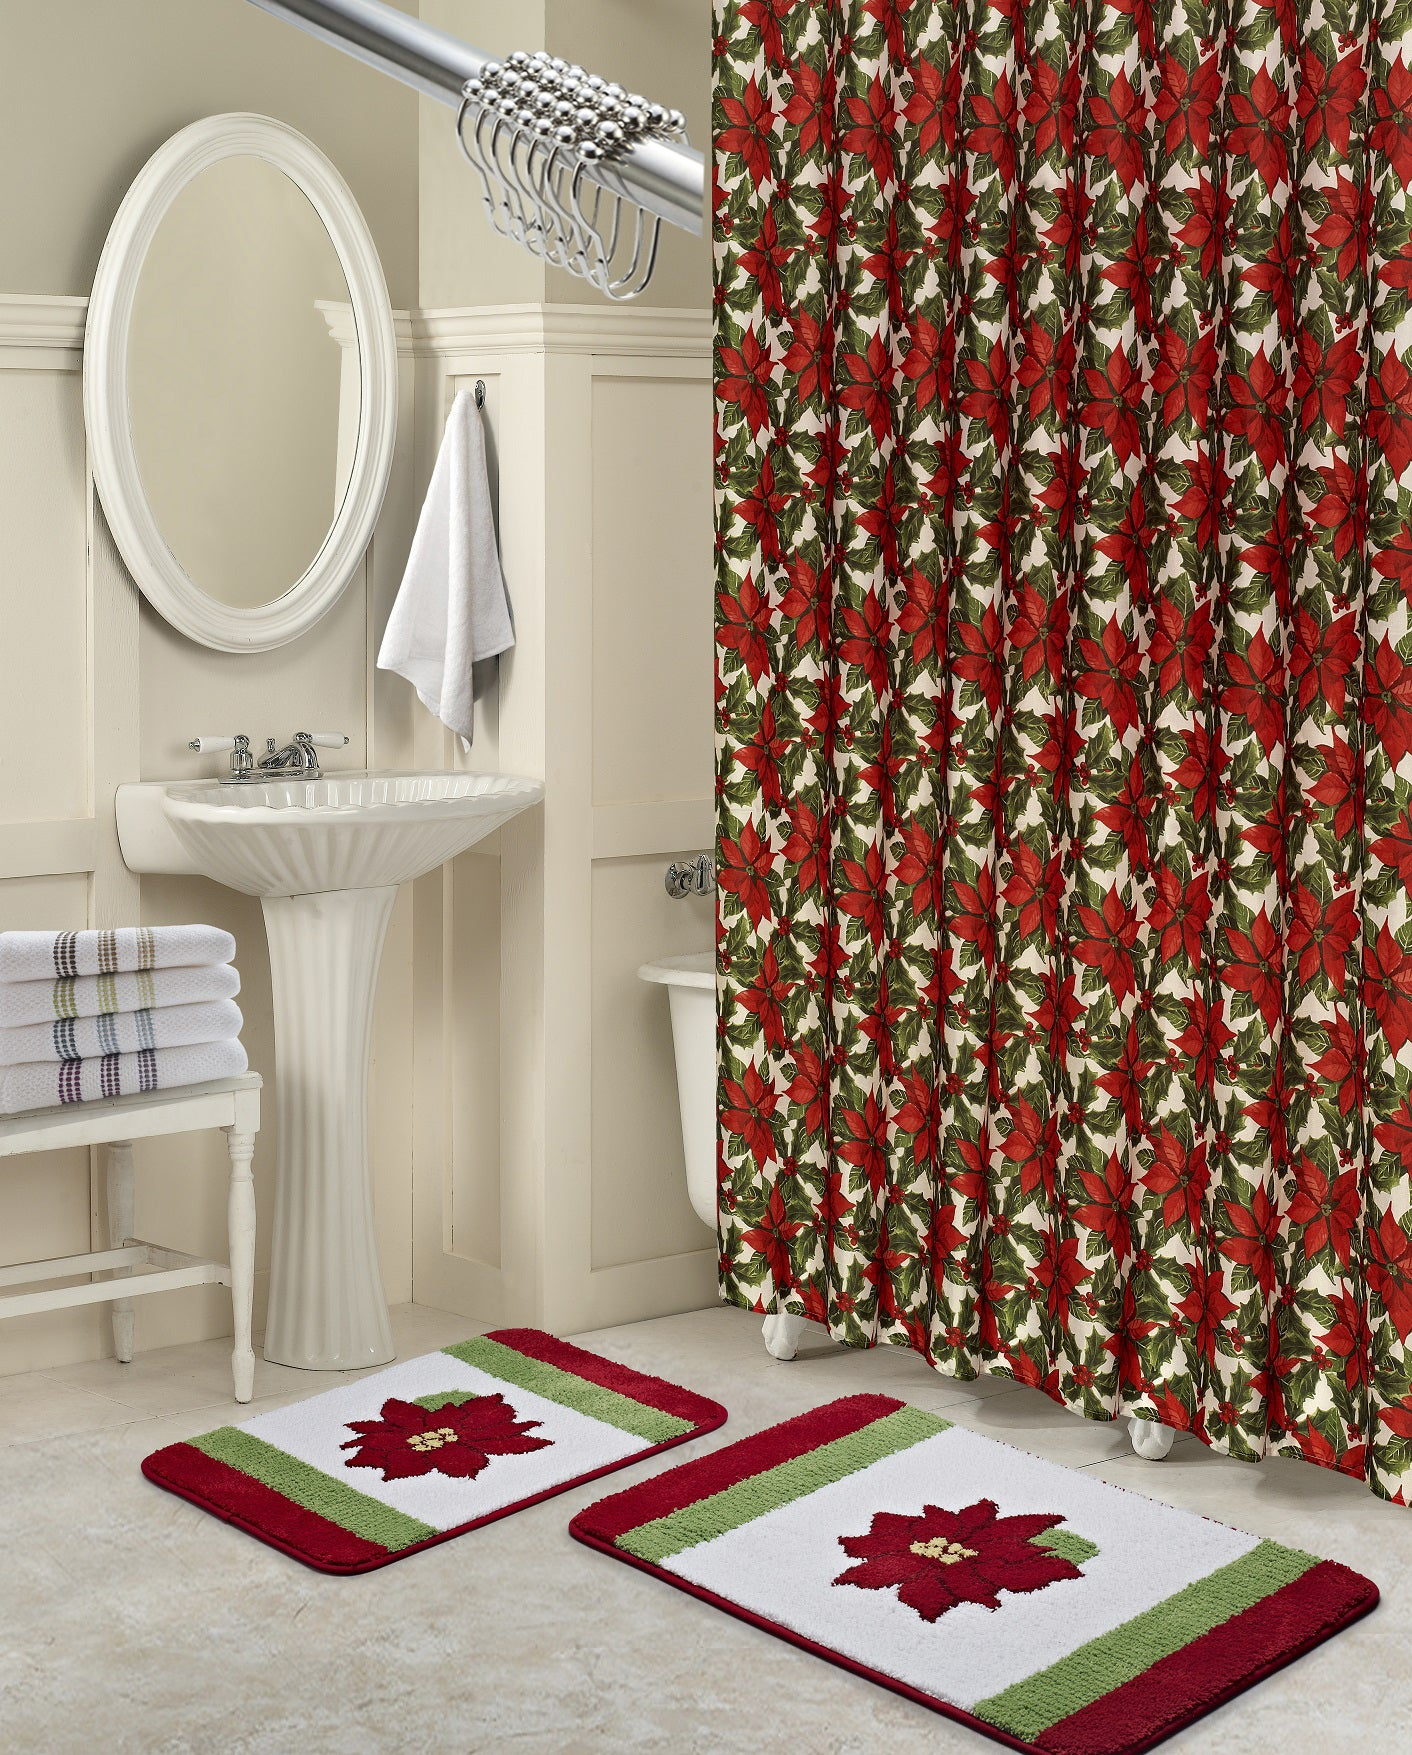 Poinsettia 15 Piece Holiday Shower Curtain SetPoinsettia 15 Piece Holiday Shower Curtain Set   Marburn Curtains. Maroon Shower Curtain Set. Home Design Ideas